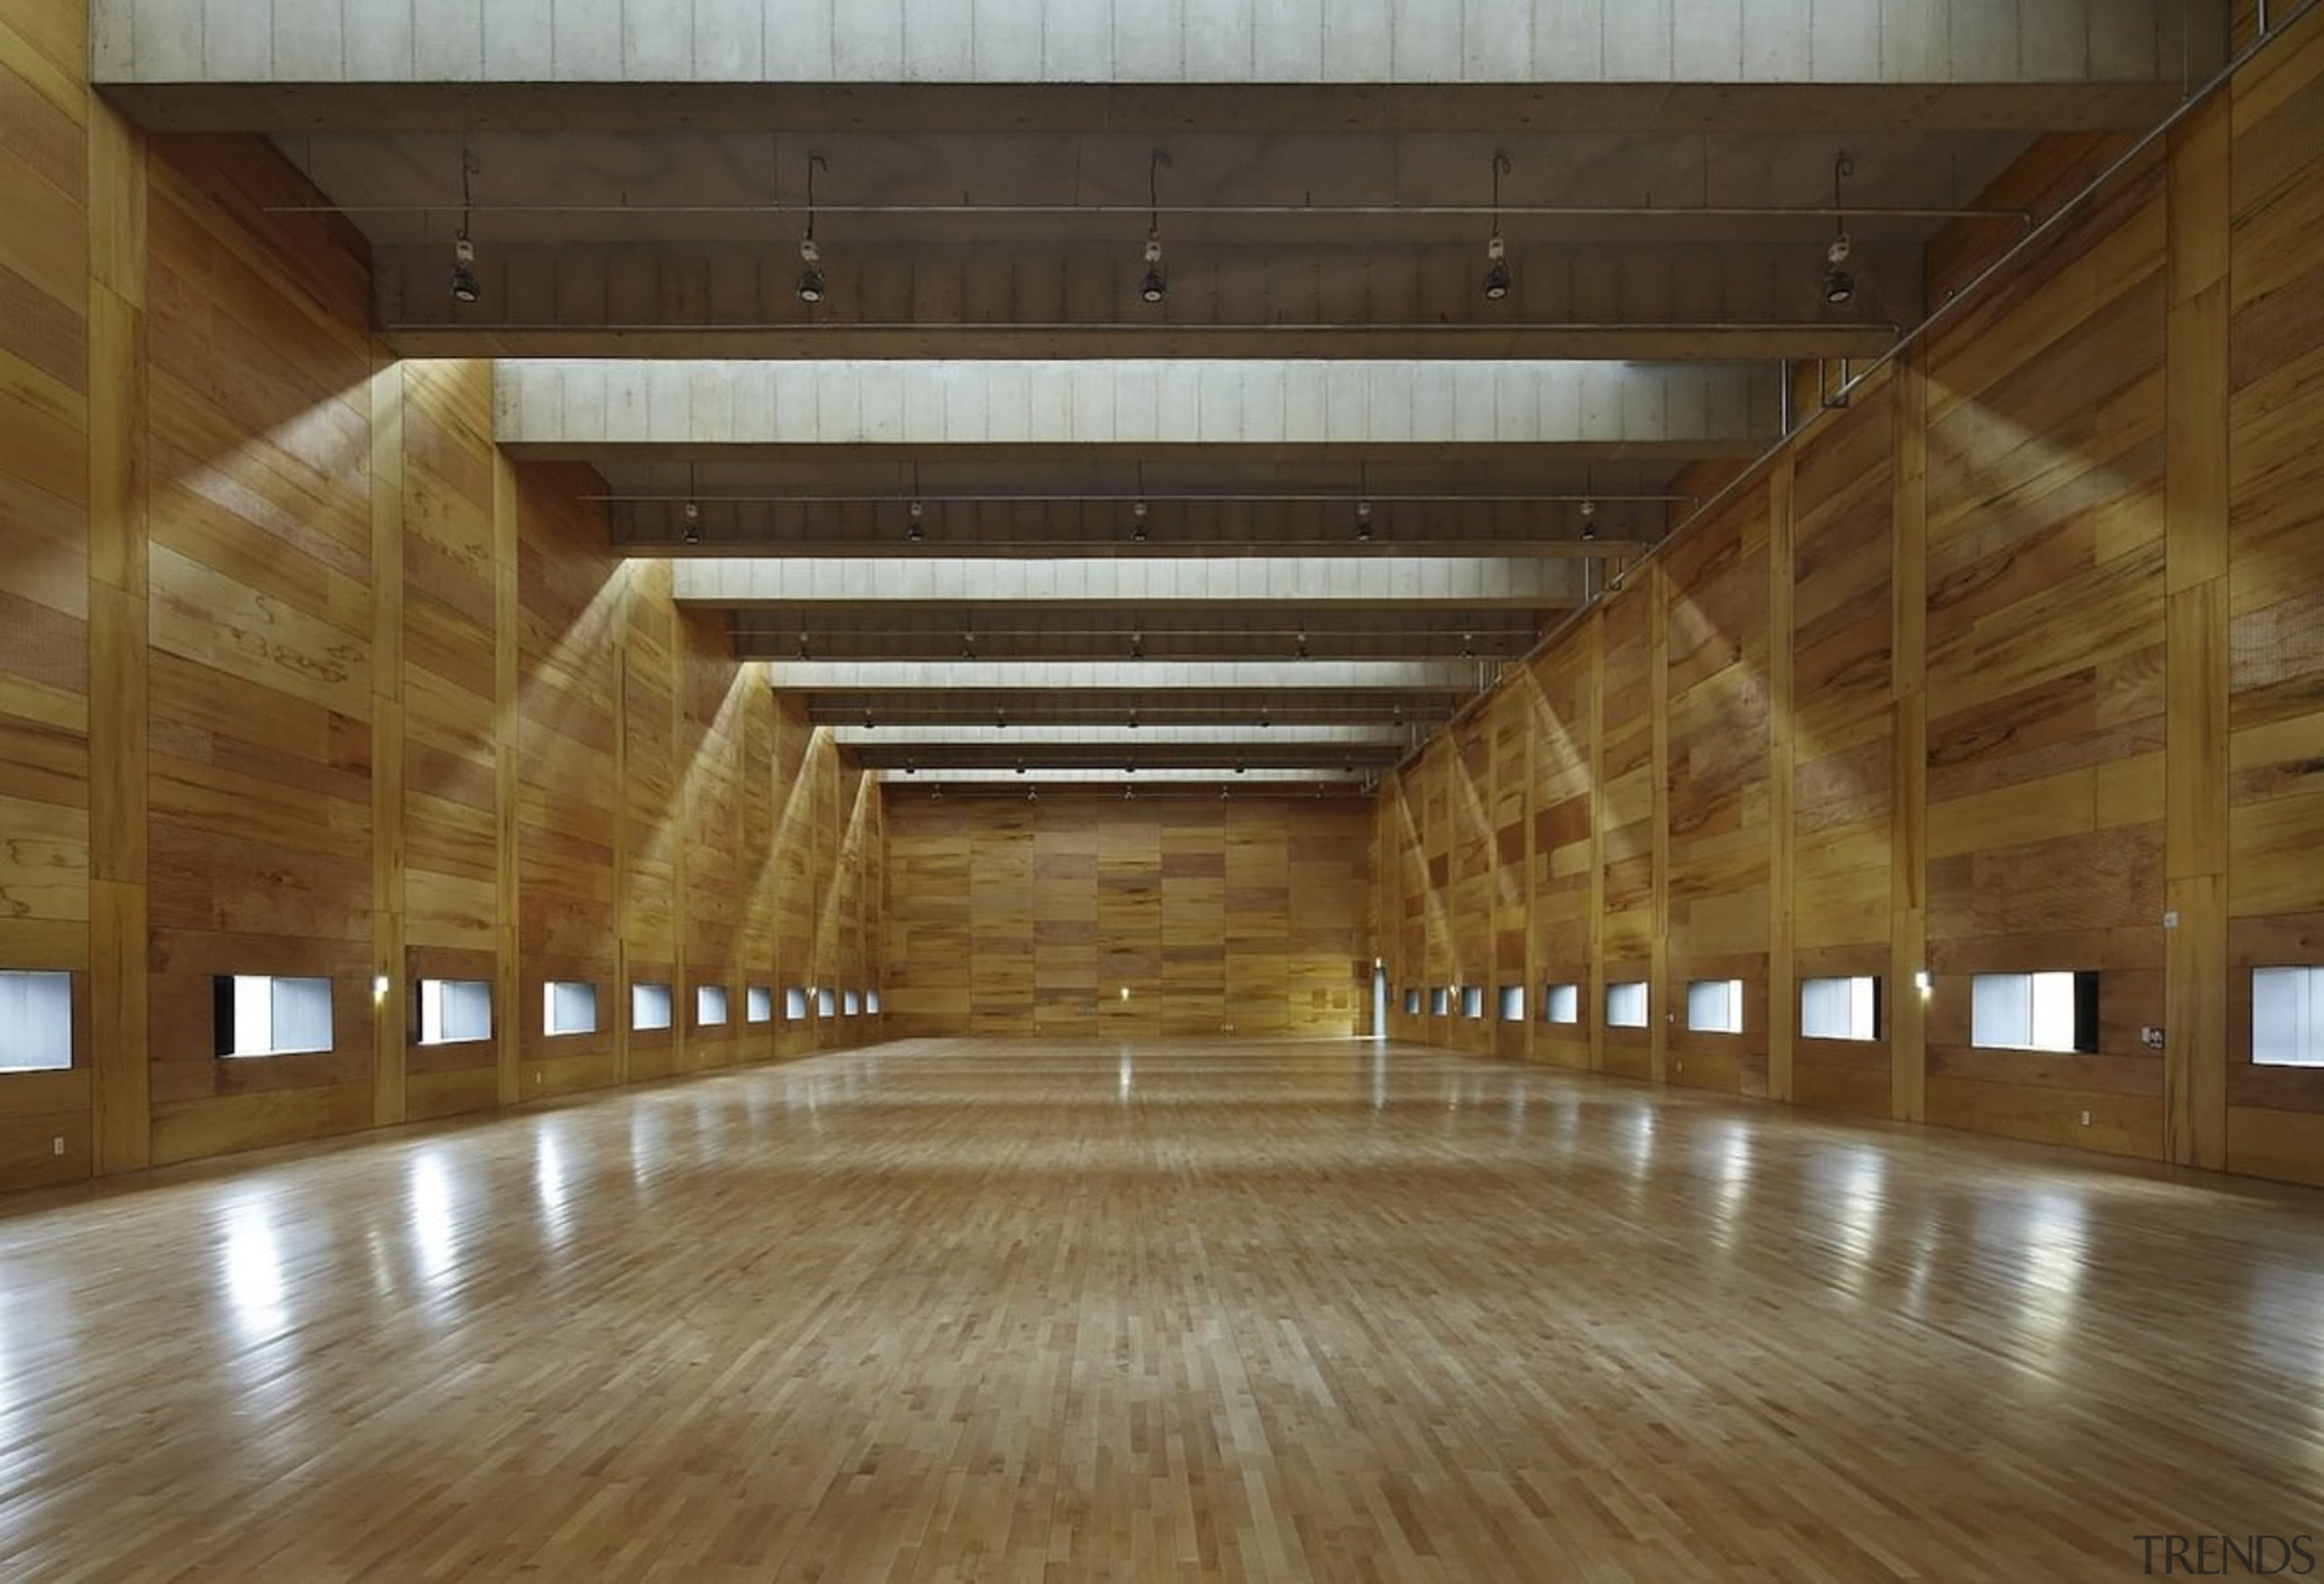 The expansive skylights cast interesting shadows - The architecture, ceiling, daylighting, floor, flooring, hardwood, interior design, lobby, structure, tourist attraction, wood, brown